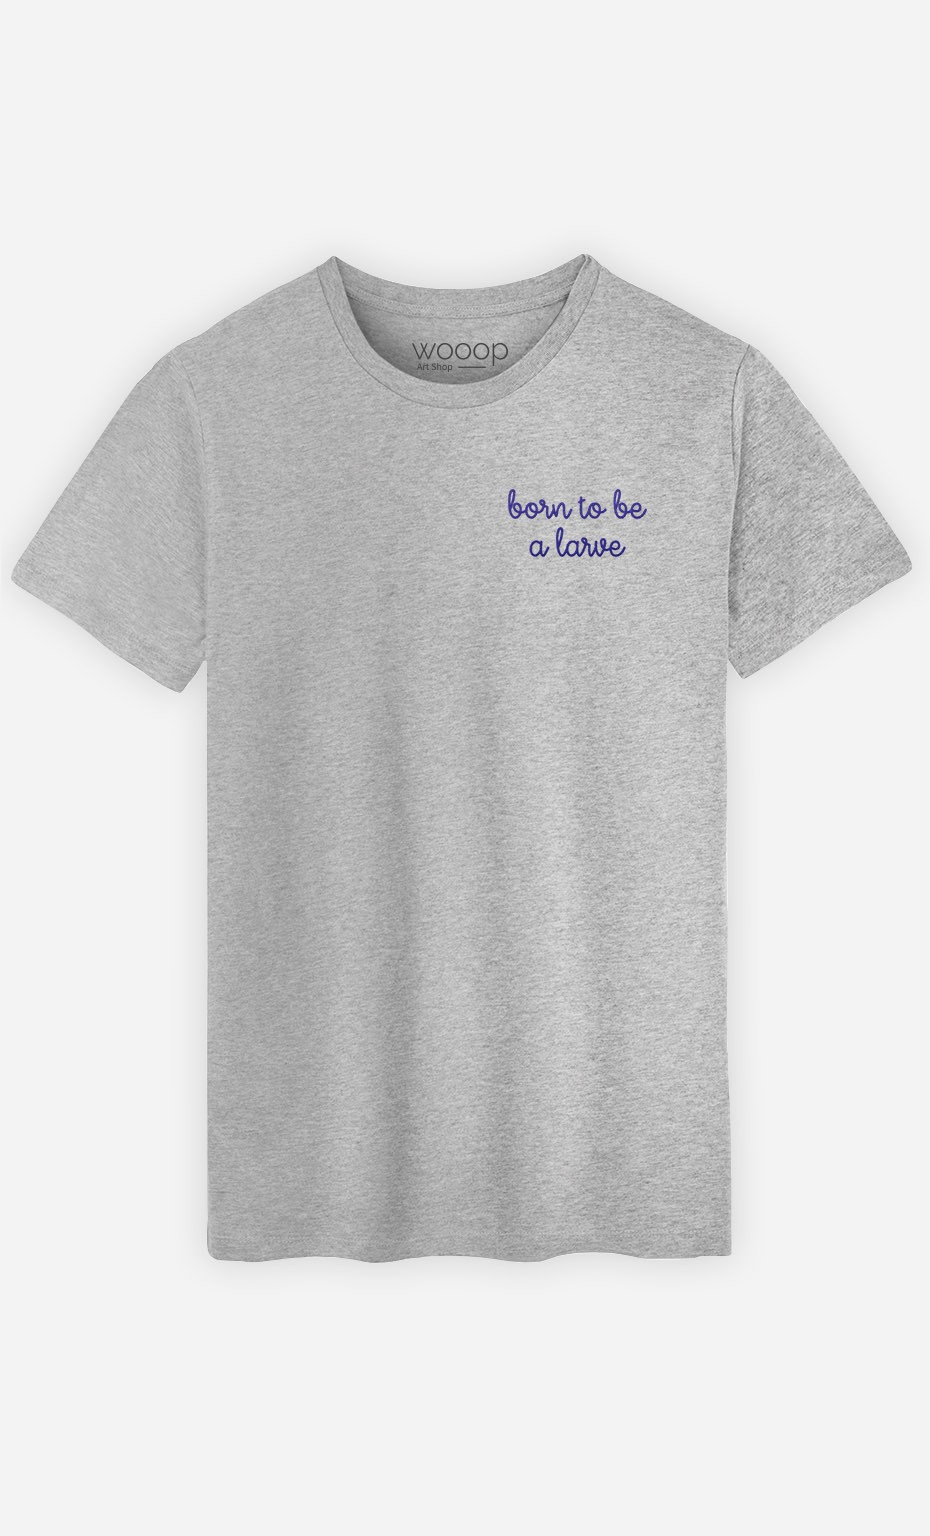 T-shirt Born to be a larve - brodé